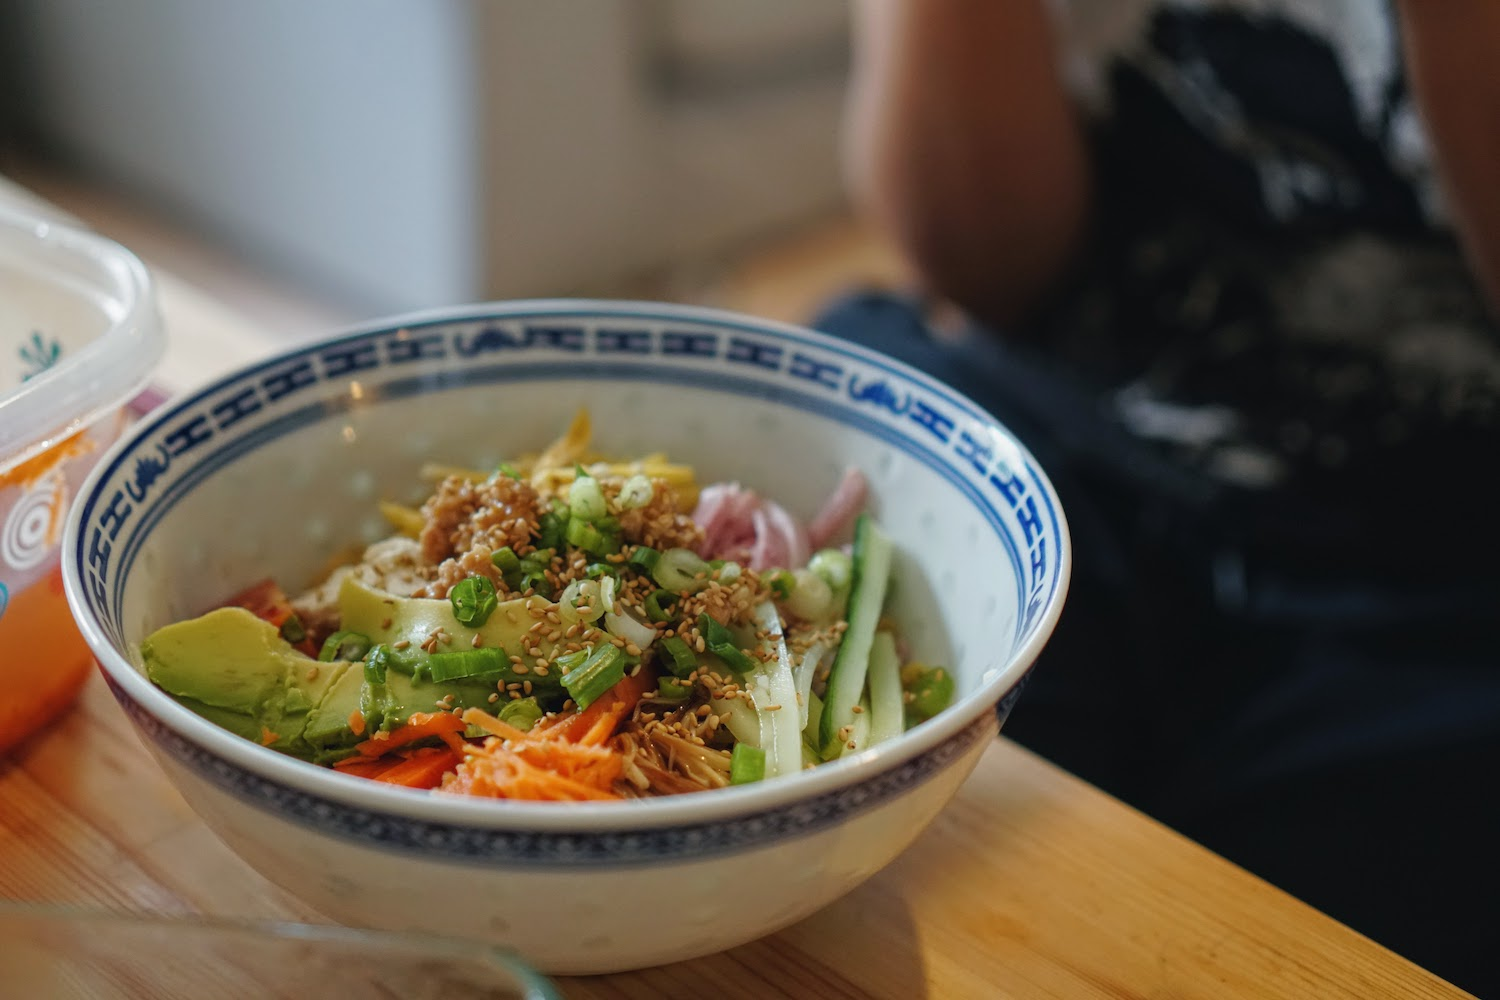 A bowl of noodles topped with avocado, carrot, scallion